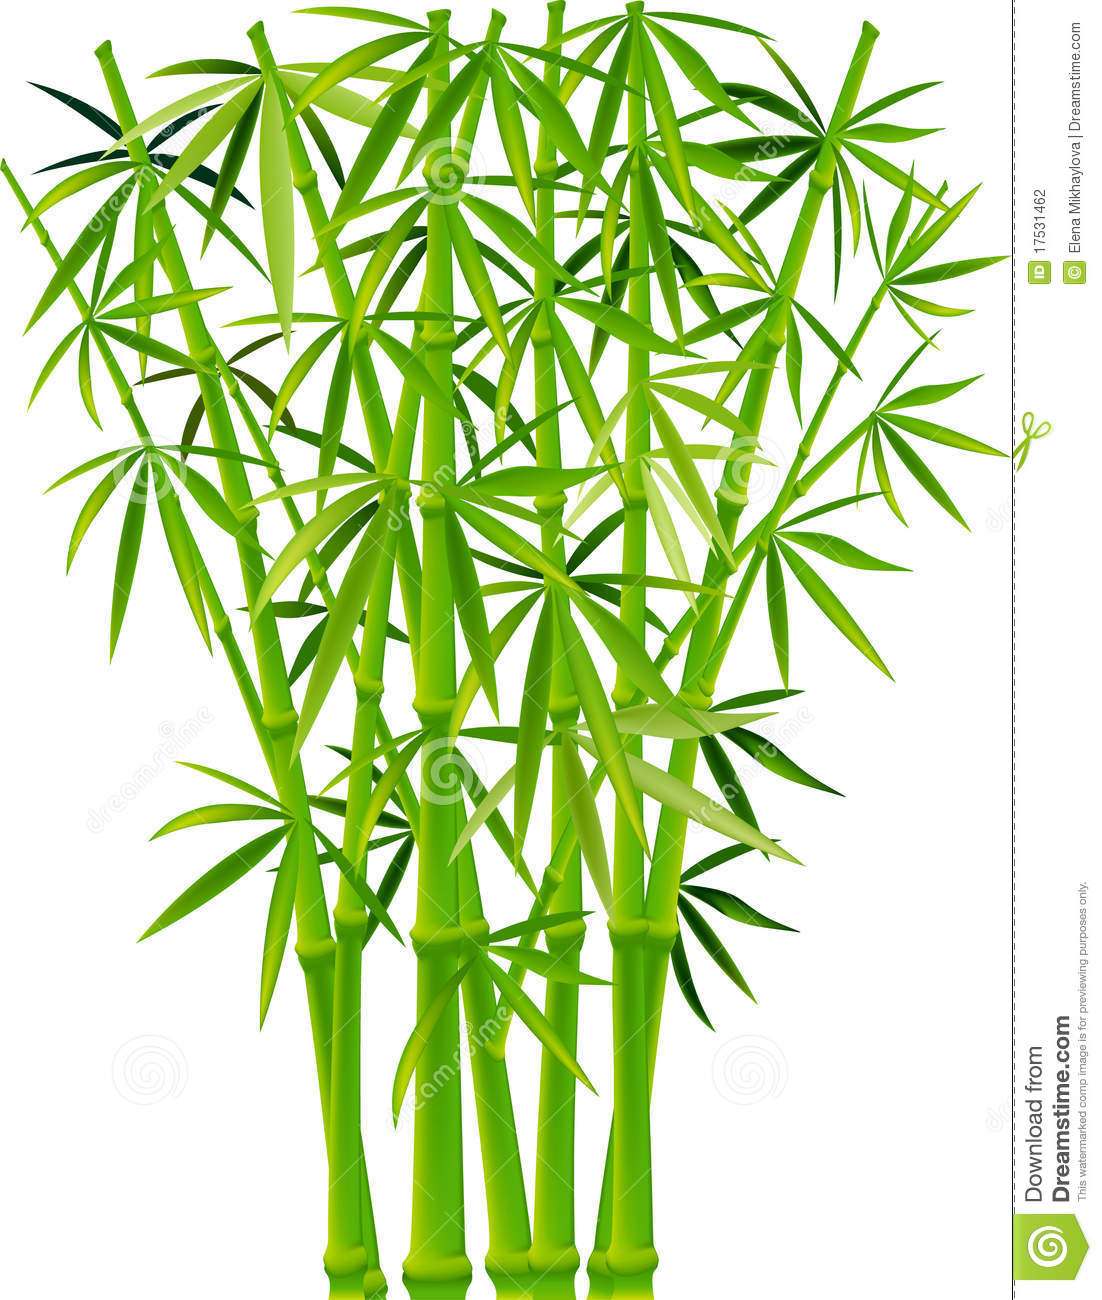 Bamboo plants clipart clipground